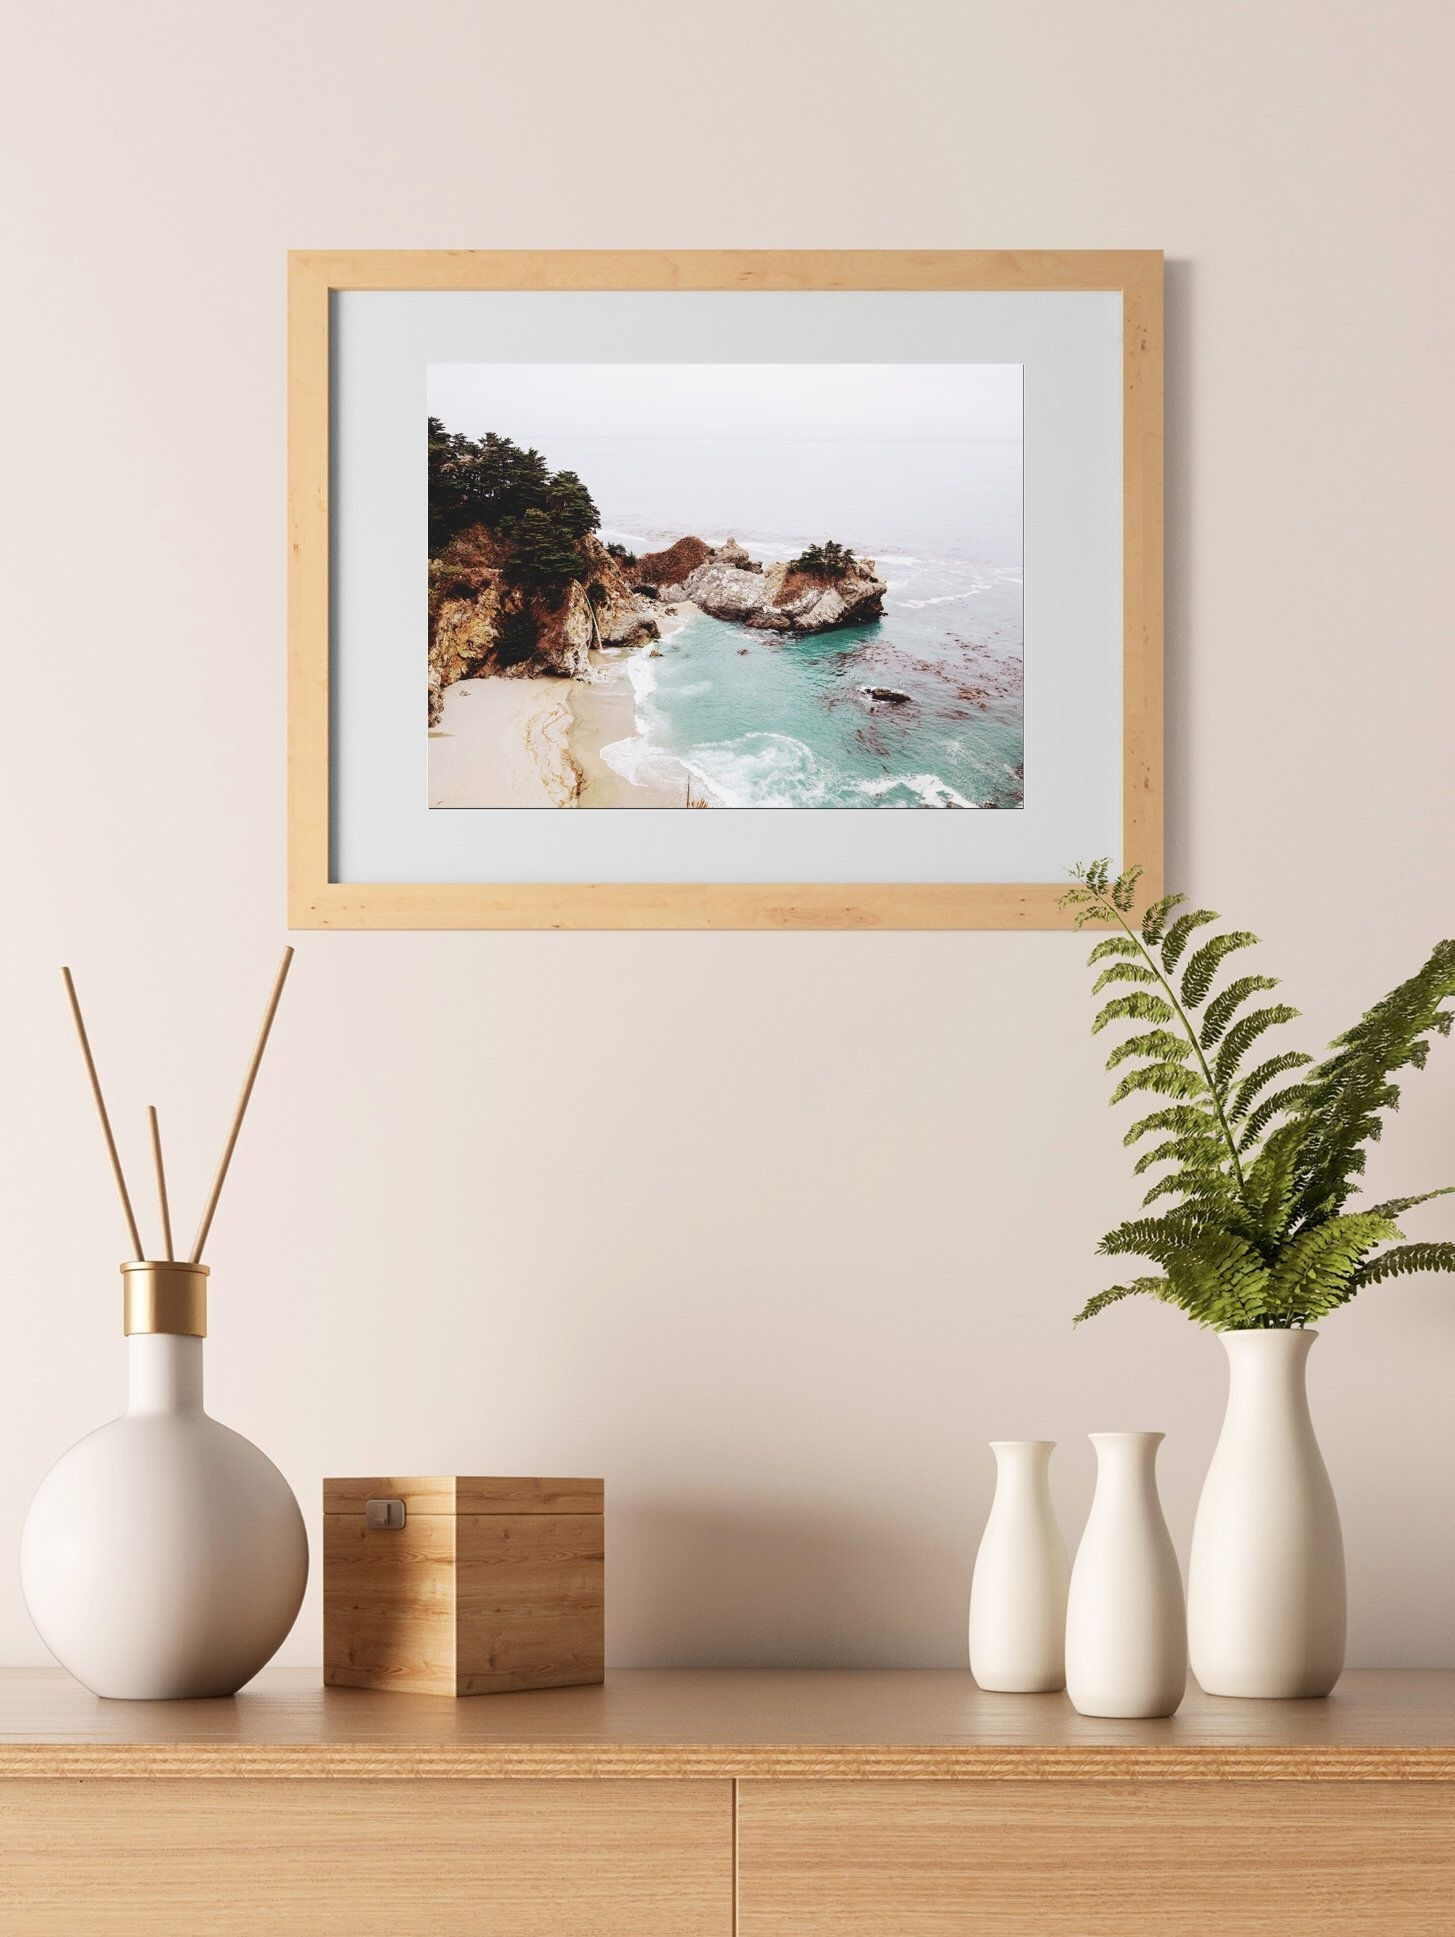 Appealing Coastal Landscape Wall Art Decor California Print Picture Regarding Current California Wall Art (Gallery 13 of 20)